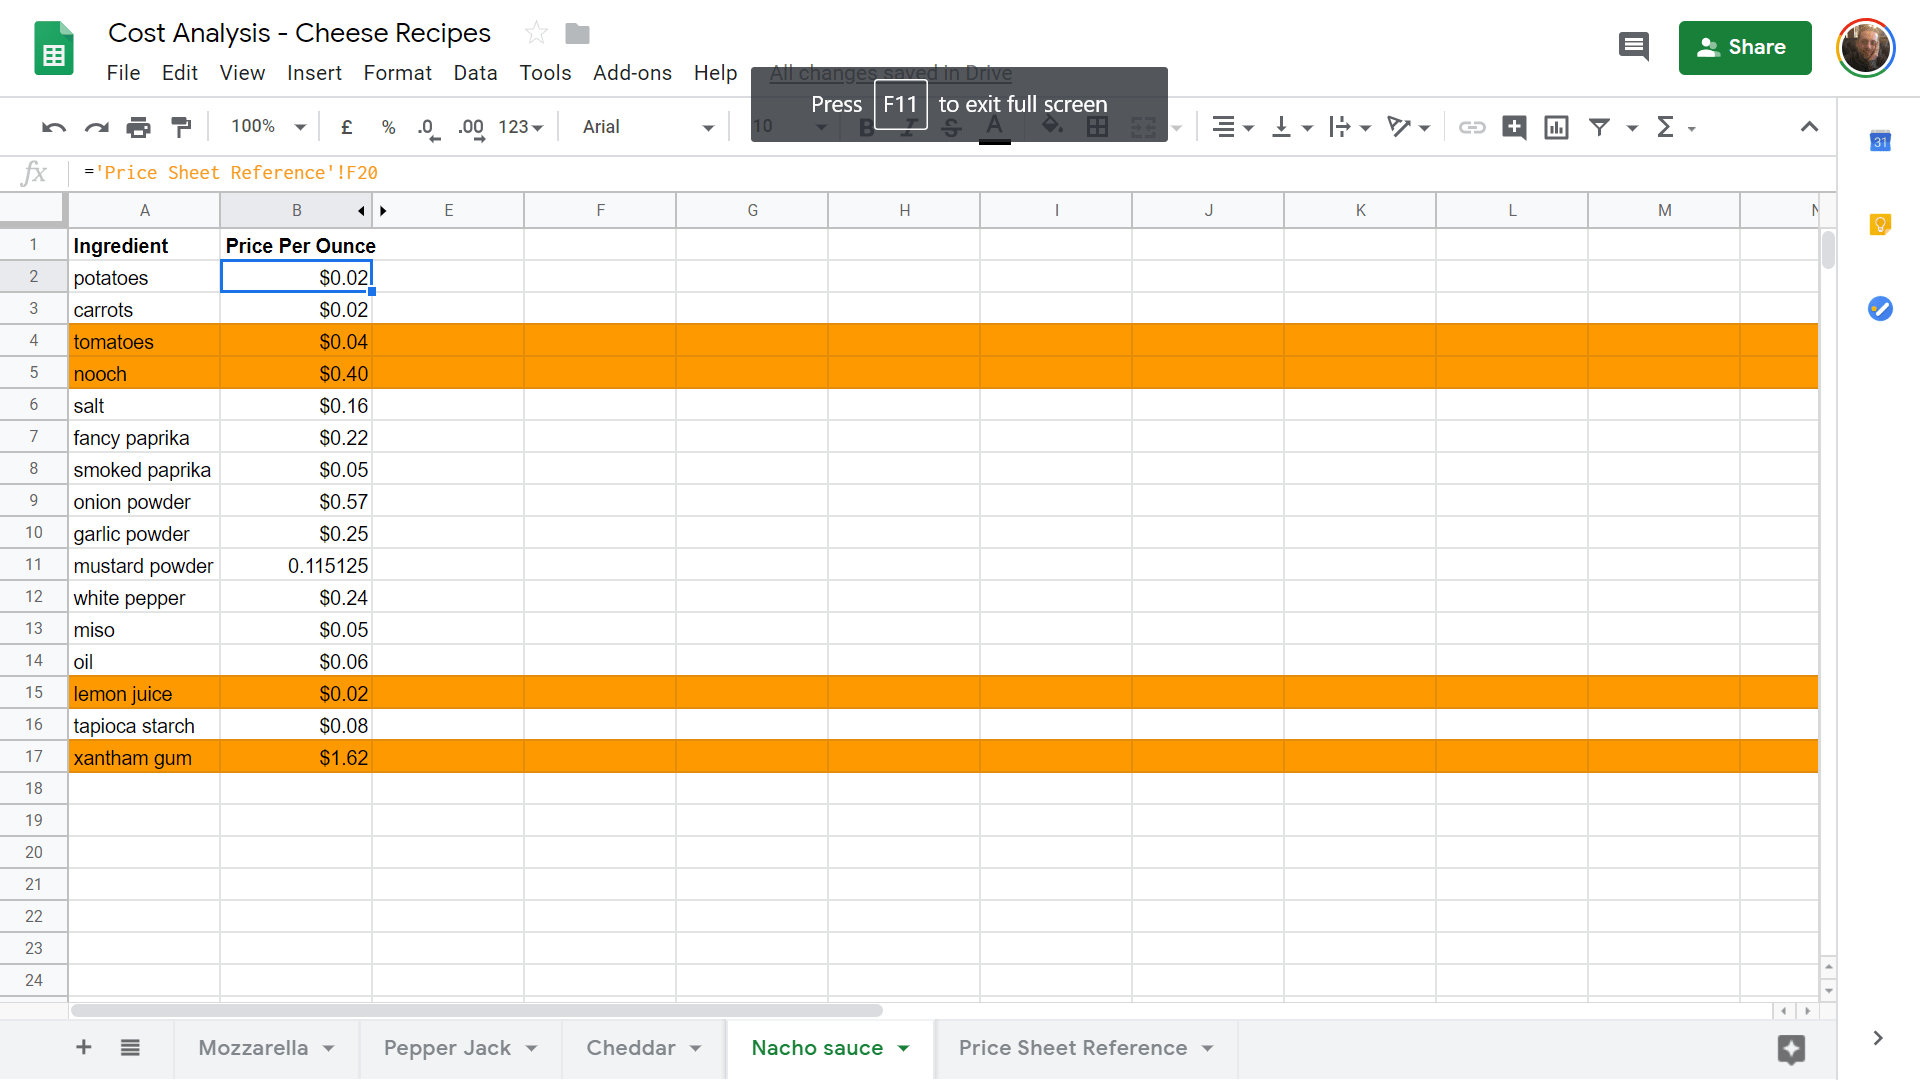 Linking A Dynamic Inventory Price List To Another File In Sheets